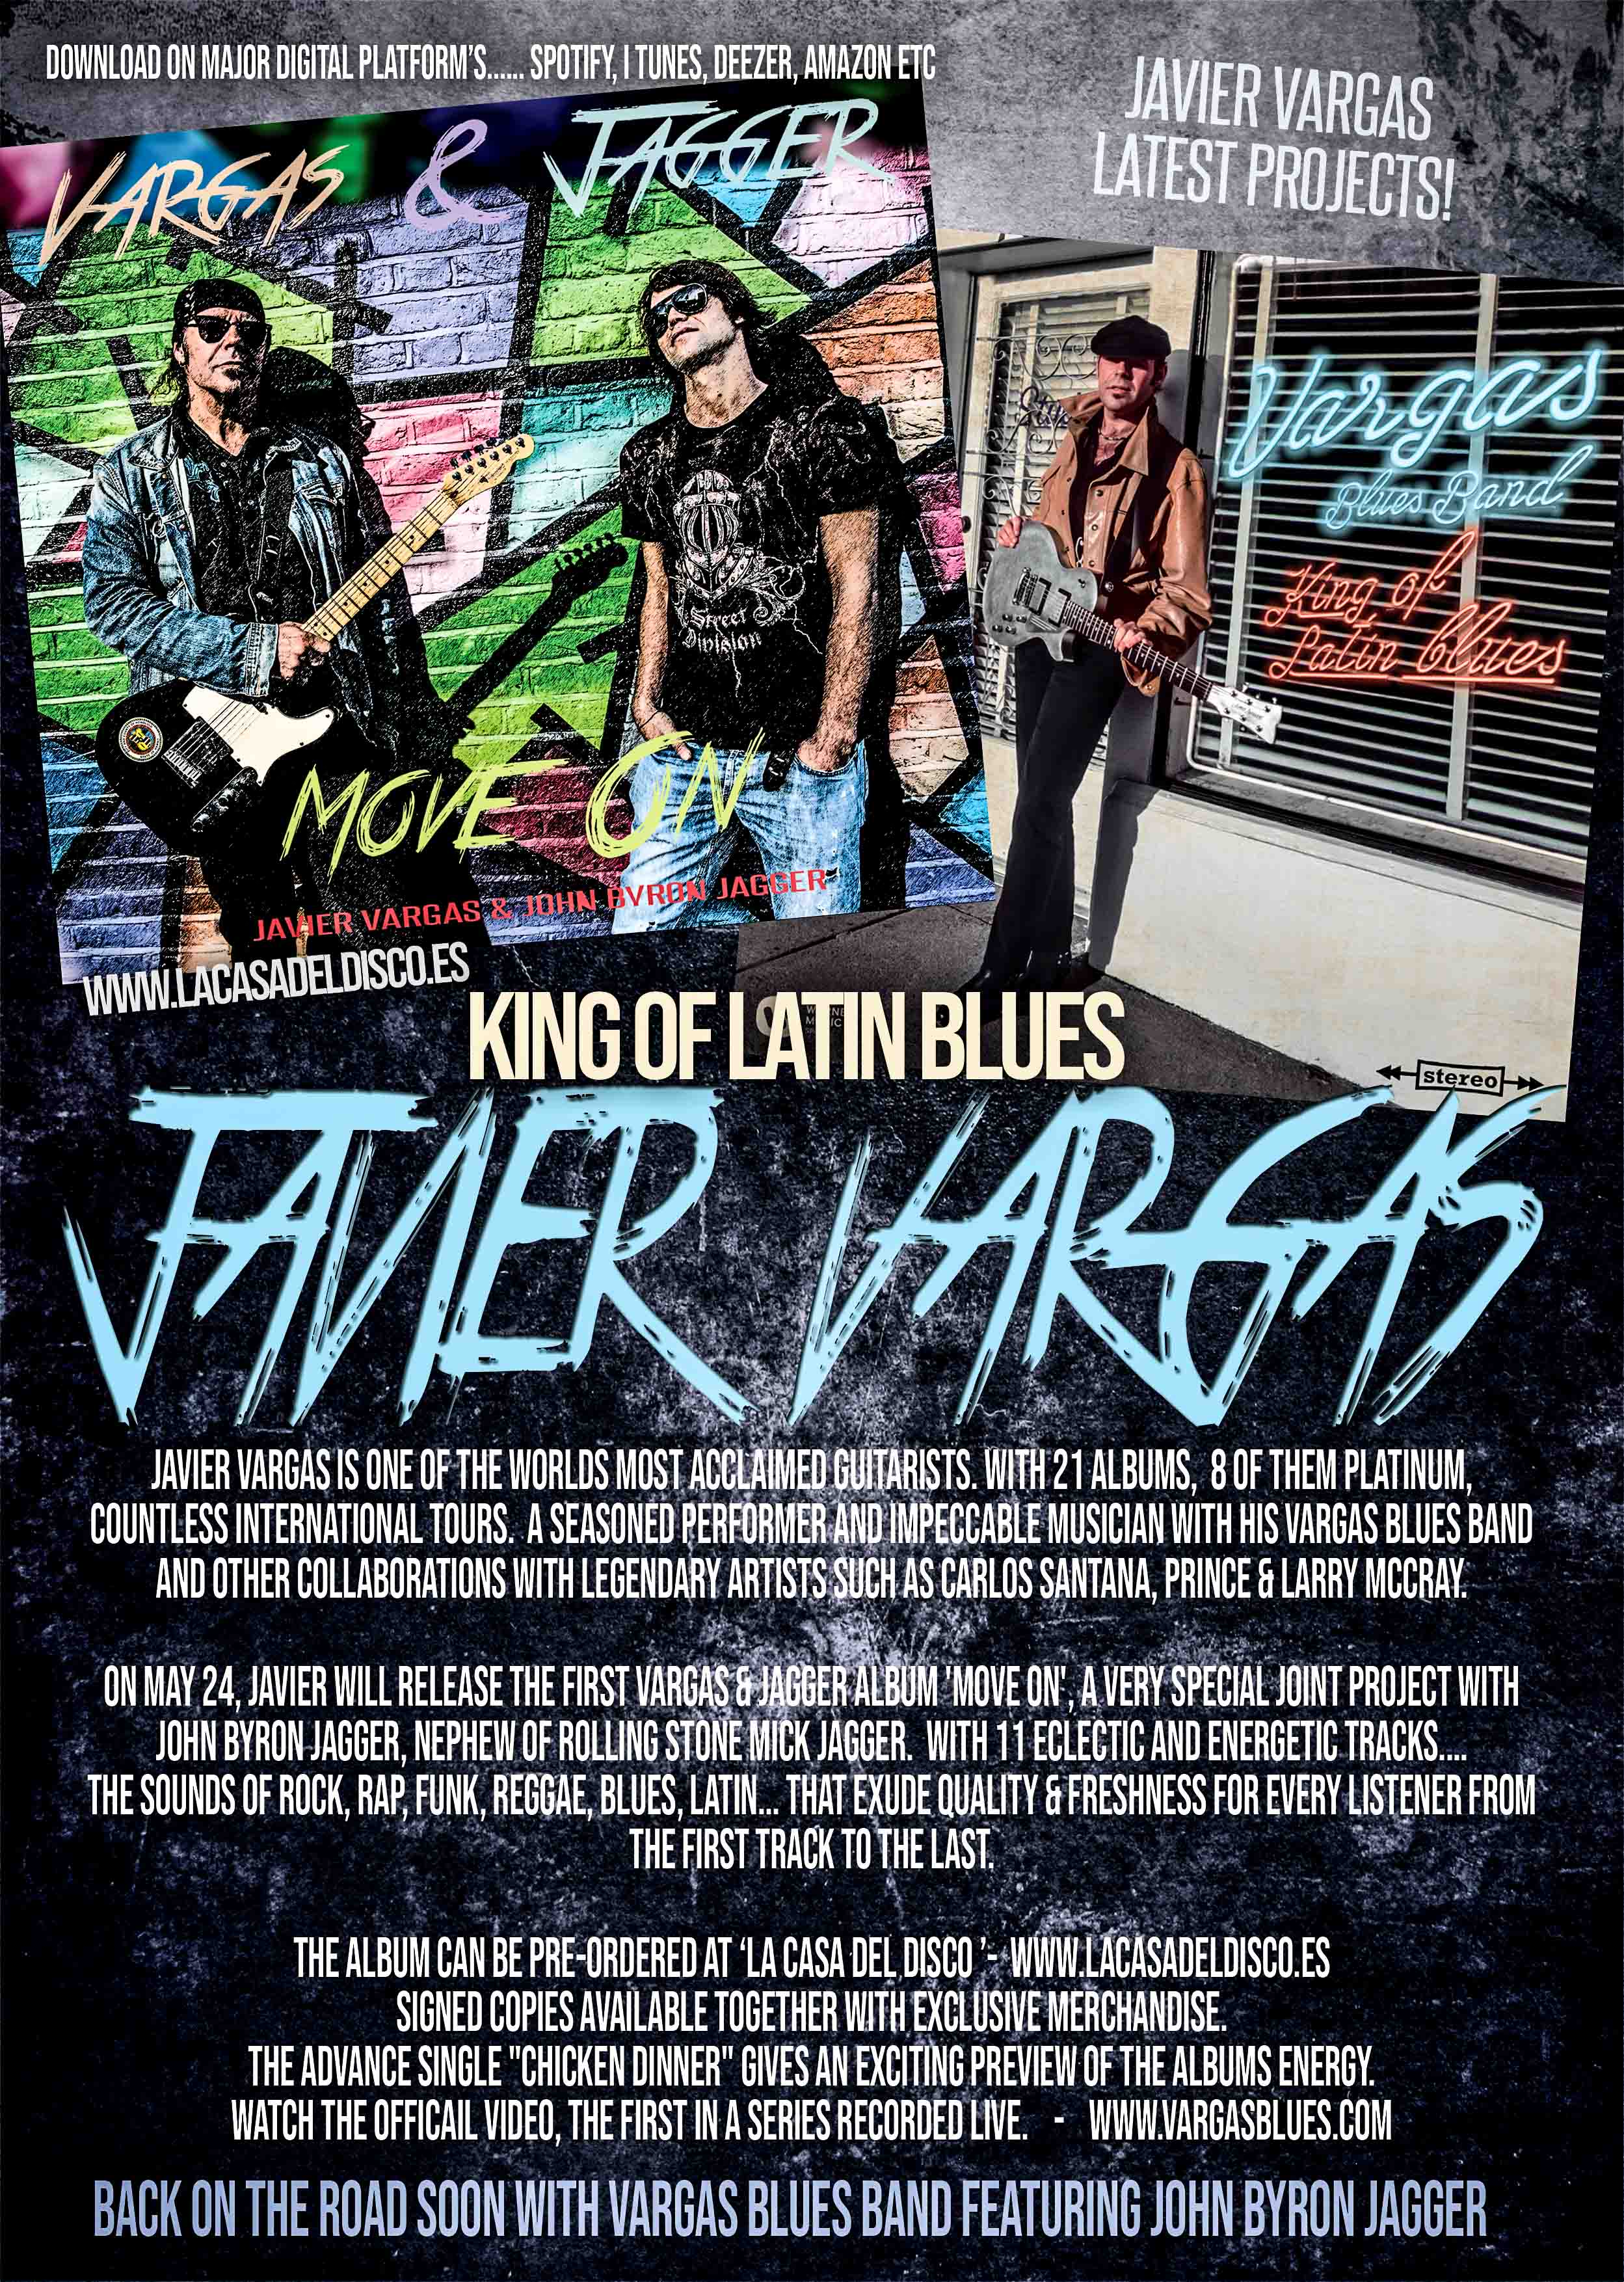 vargas blues band feat  john bryon jagger (eSP) - jh